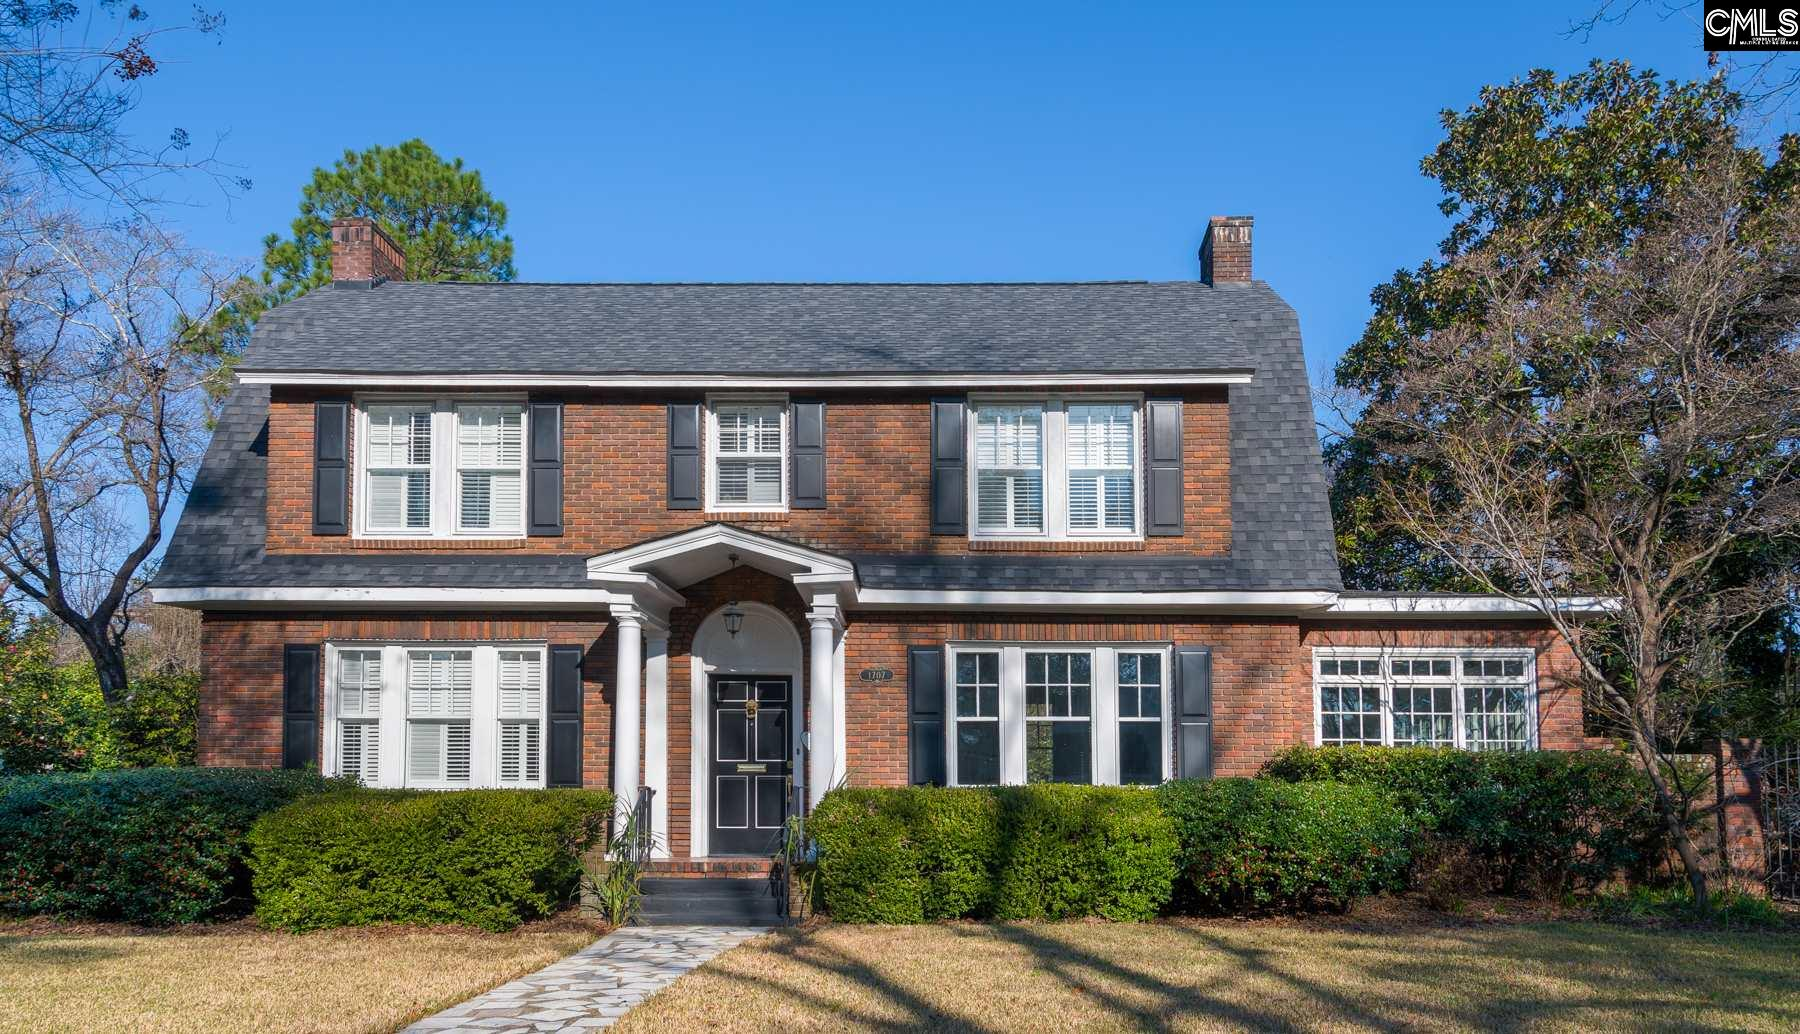 1707 Heyward Columbia, SC 29205